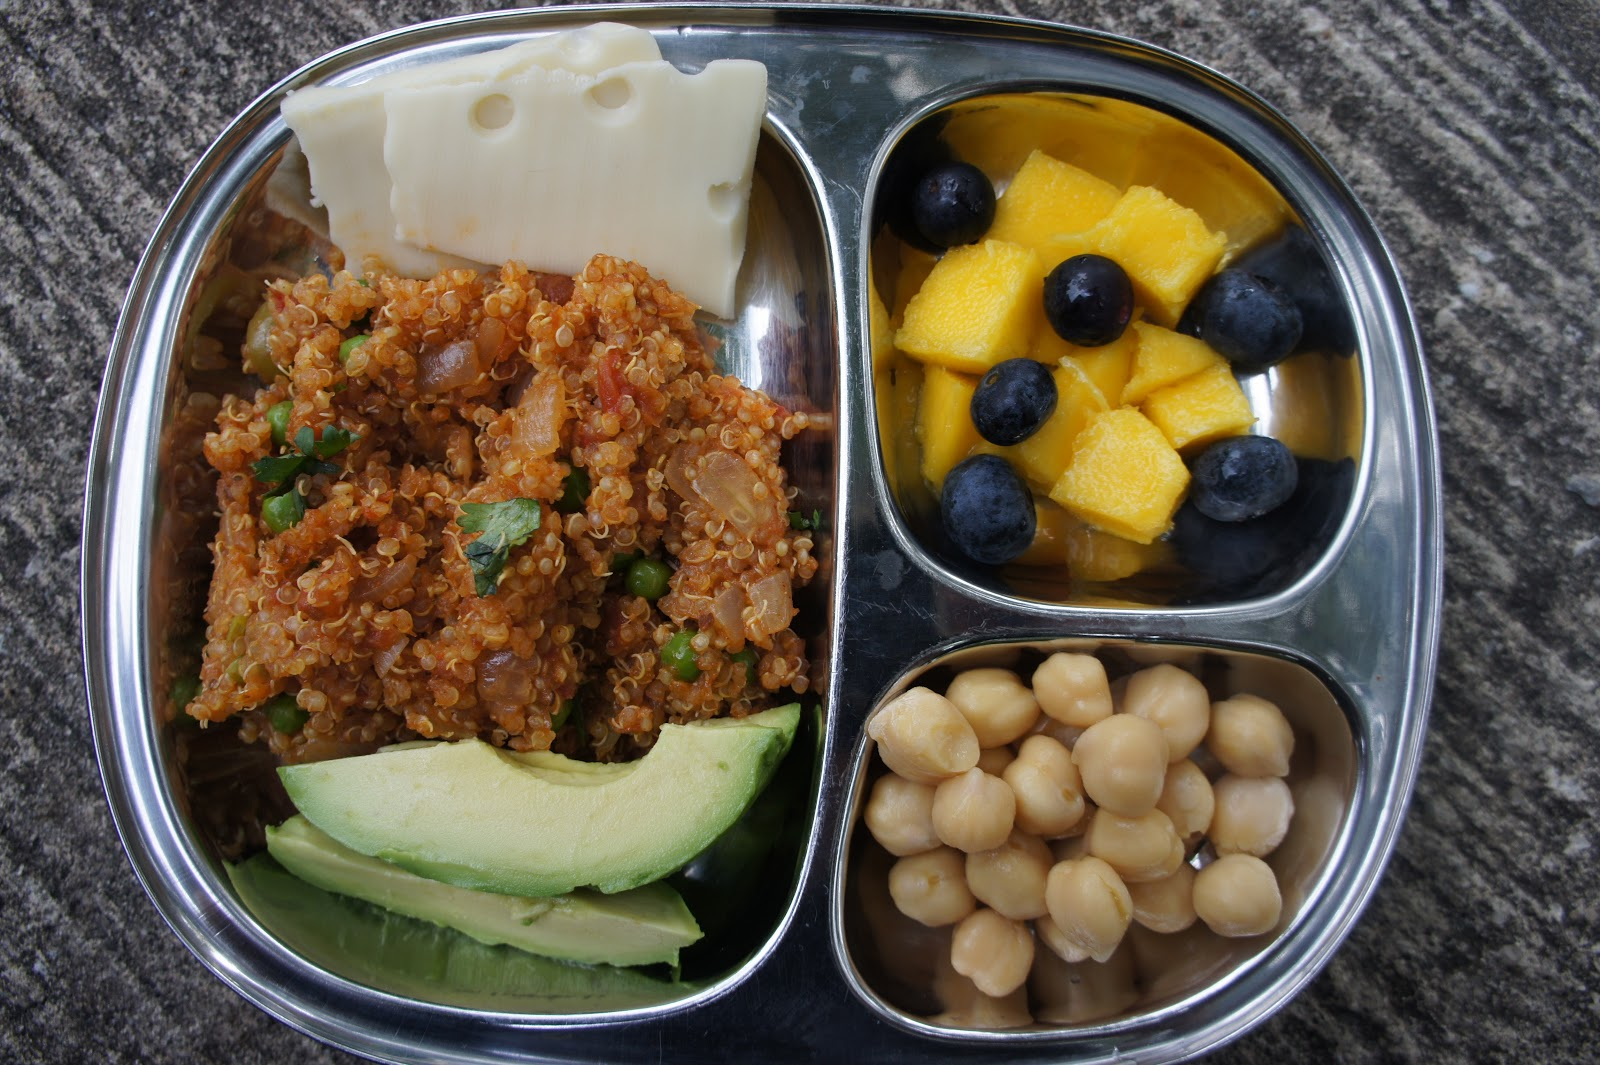 ... fresh mango and blueberries, garbanzo beans, avocado, Spanish quinoa